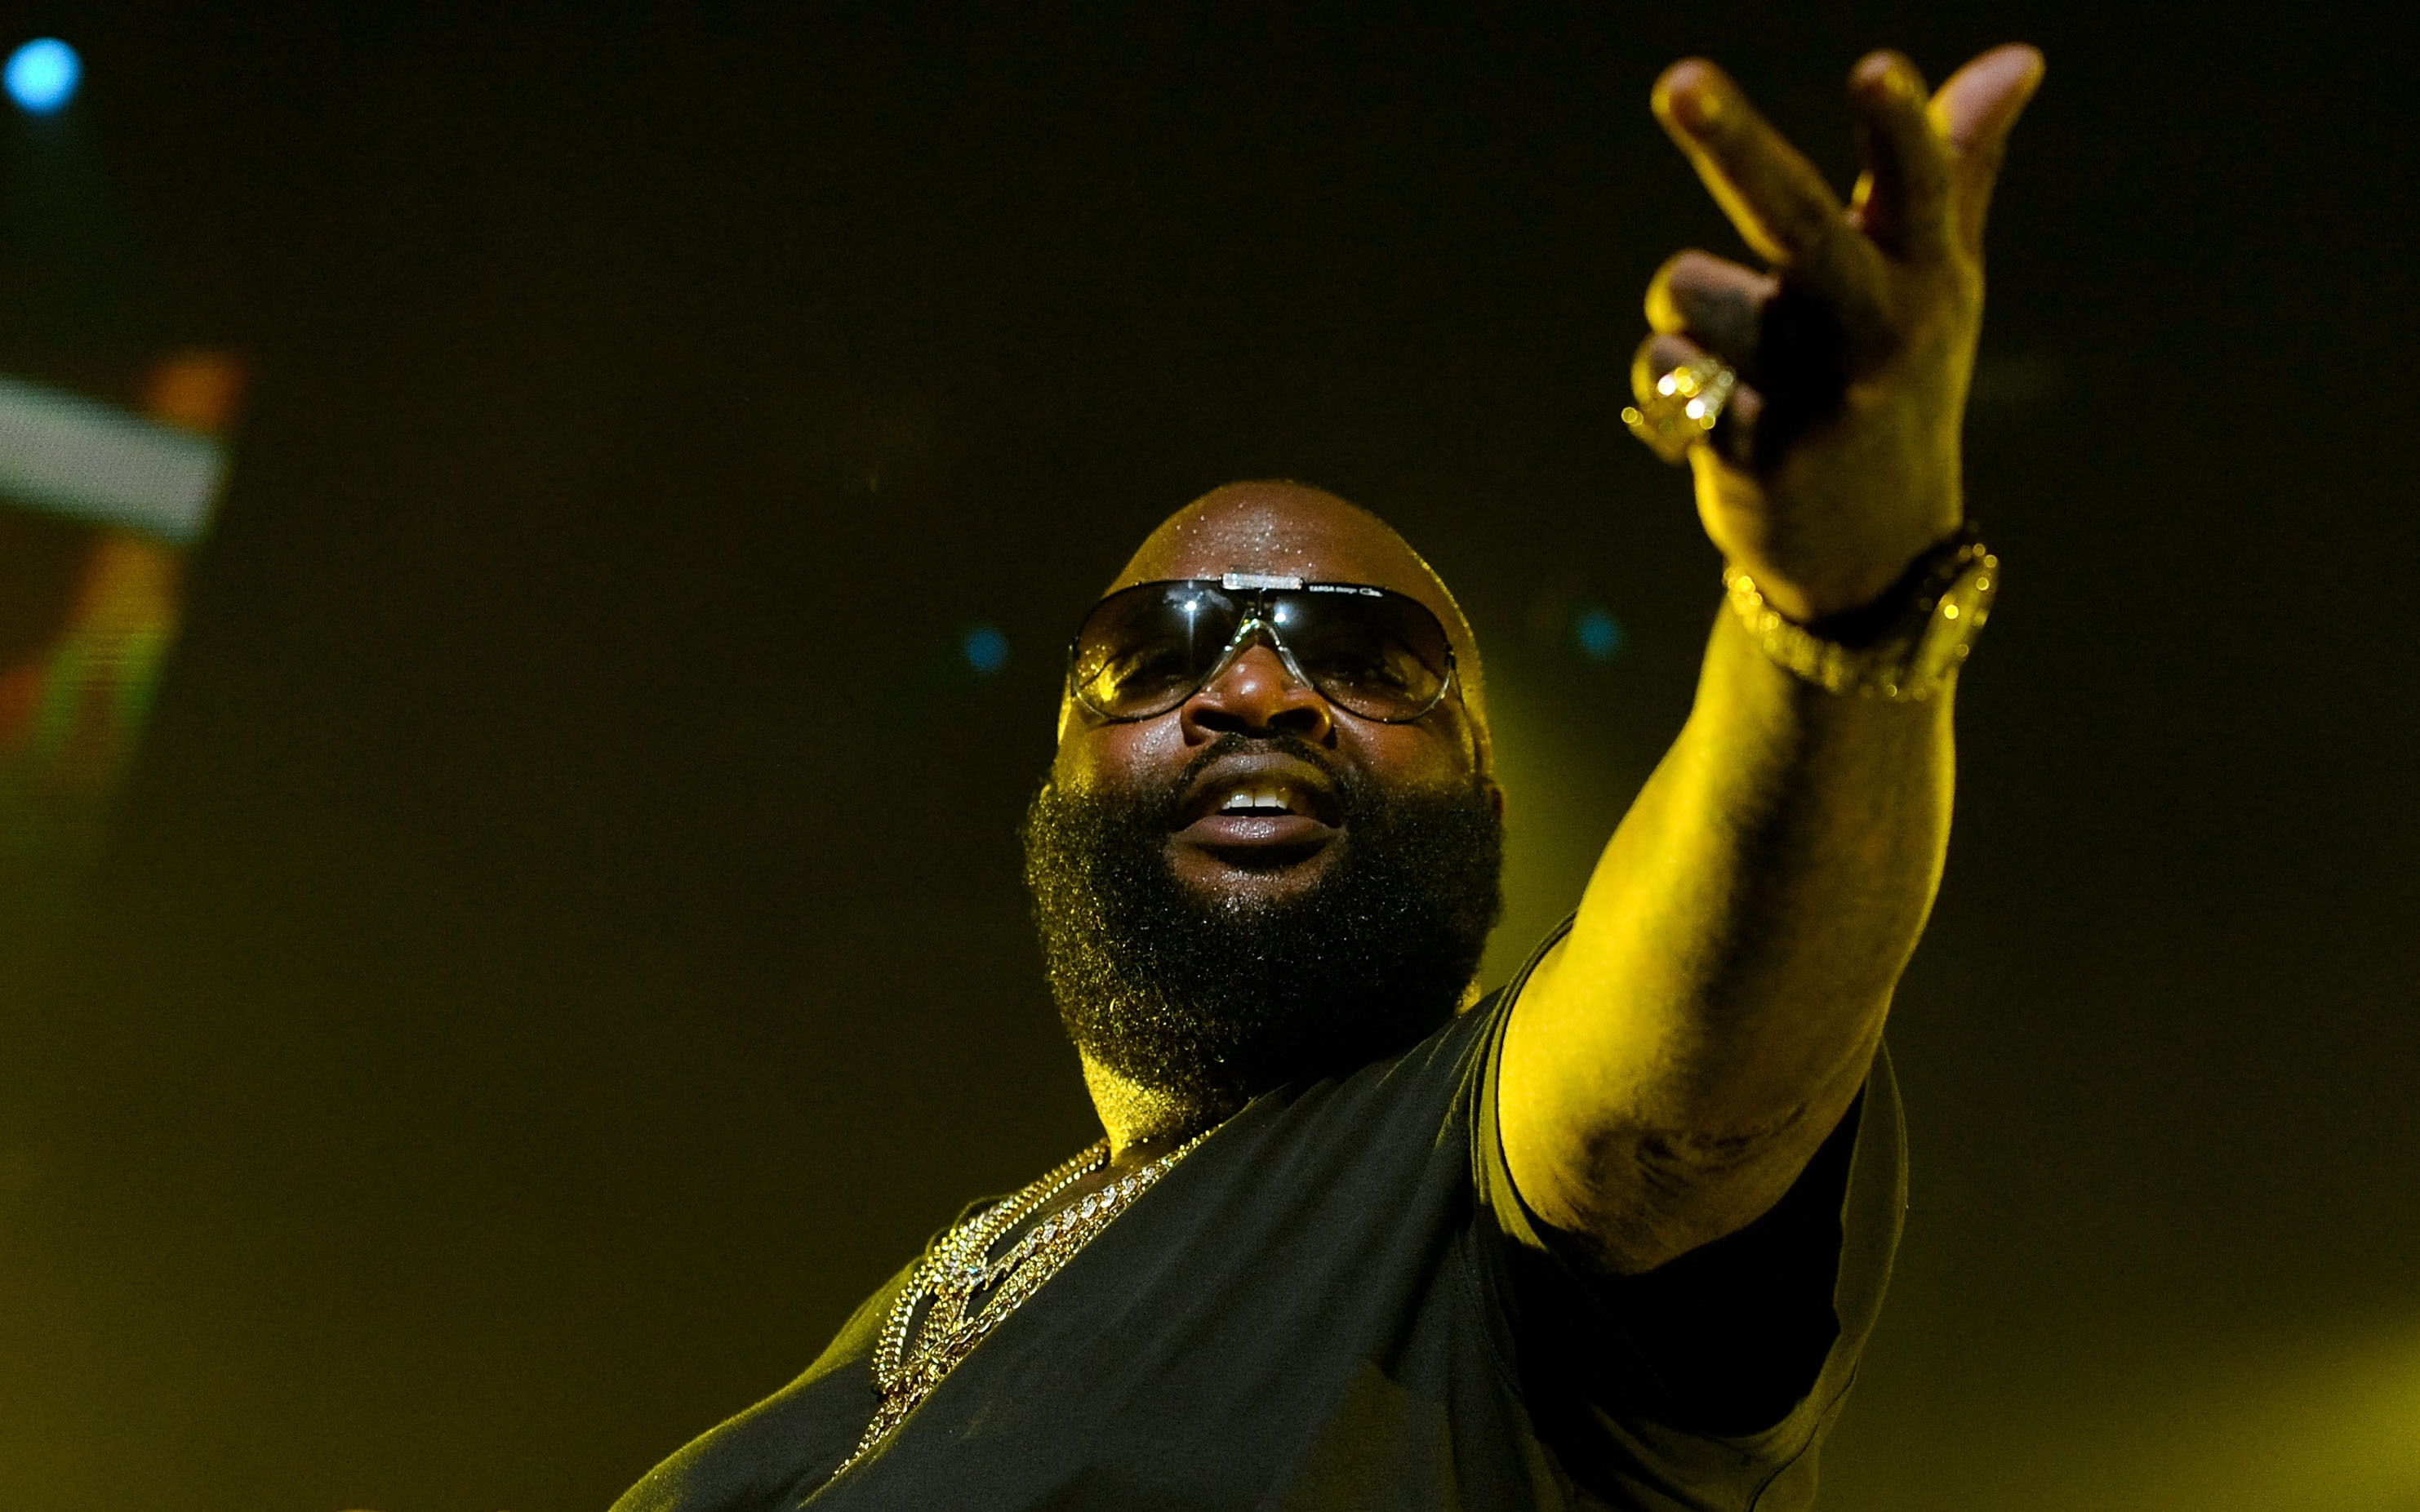 Rick Ross Hd Wallpaper